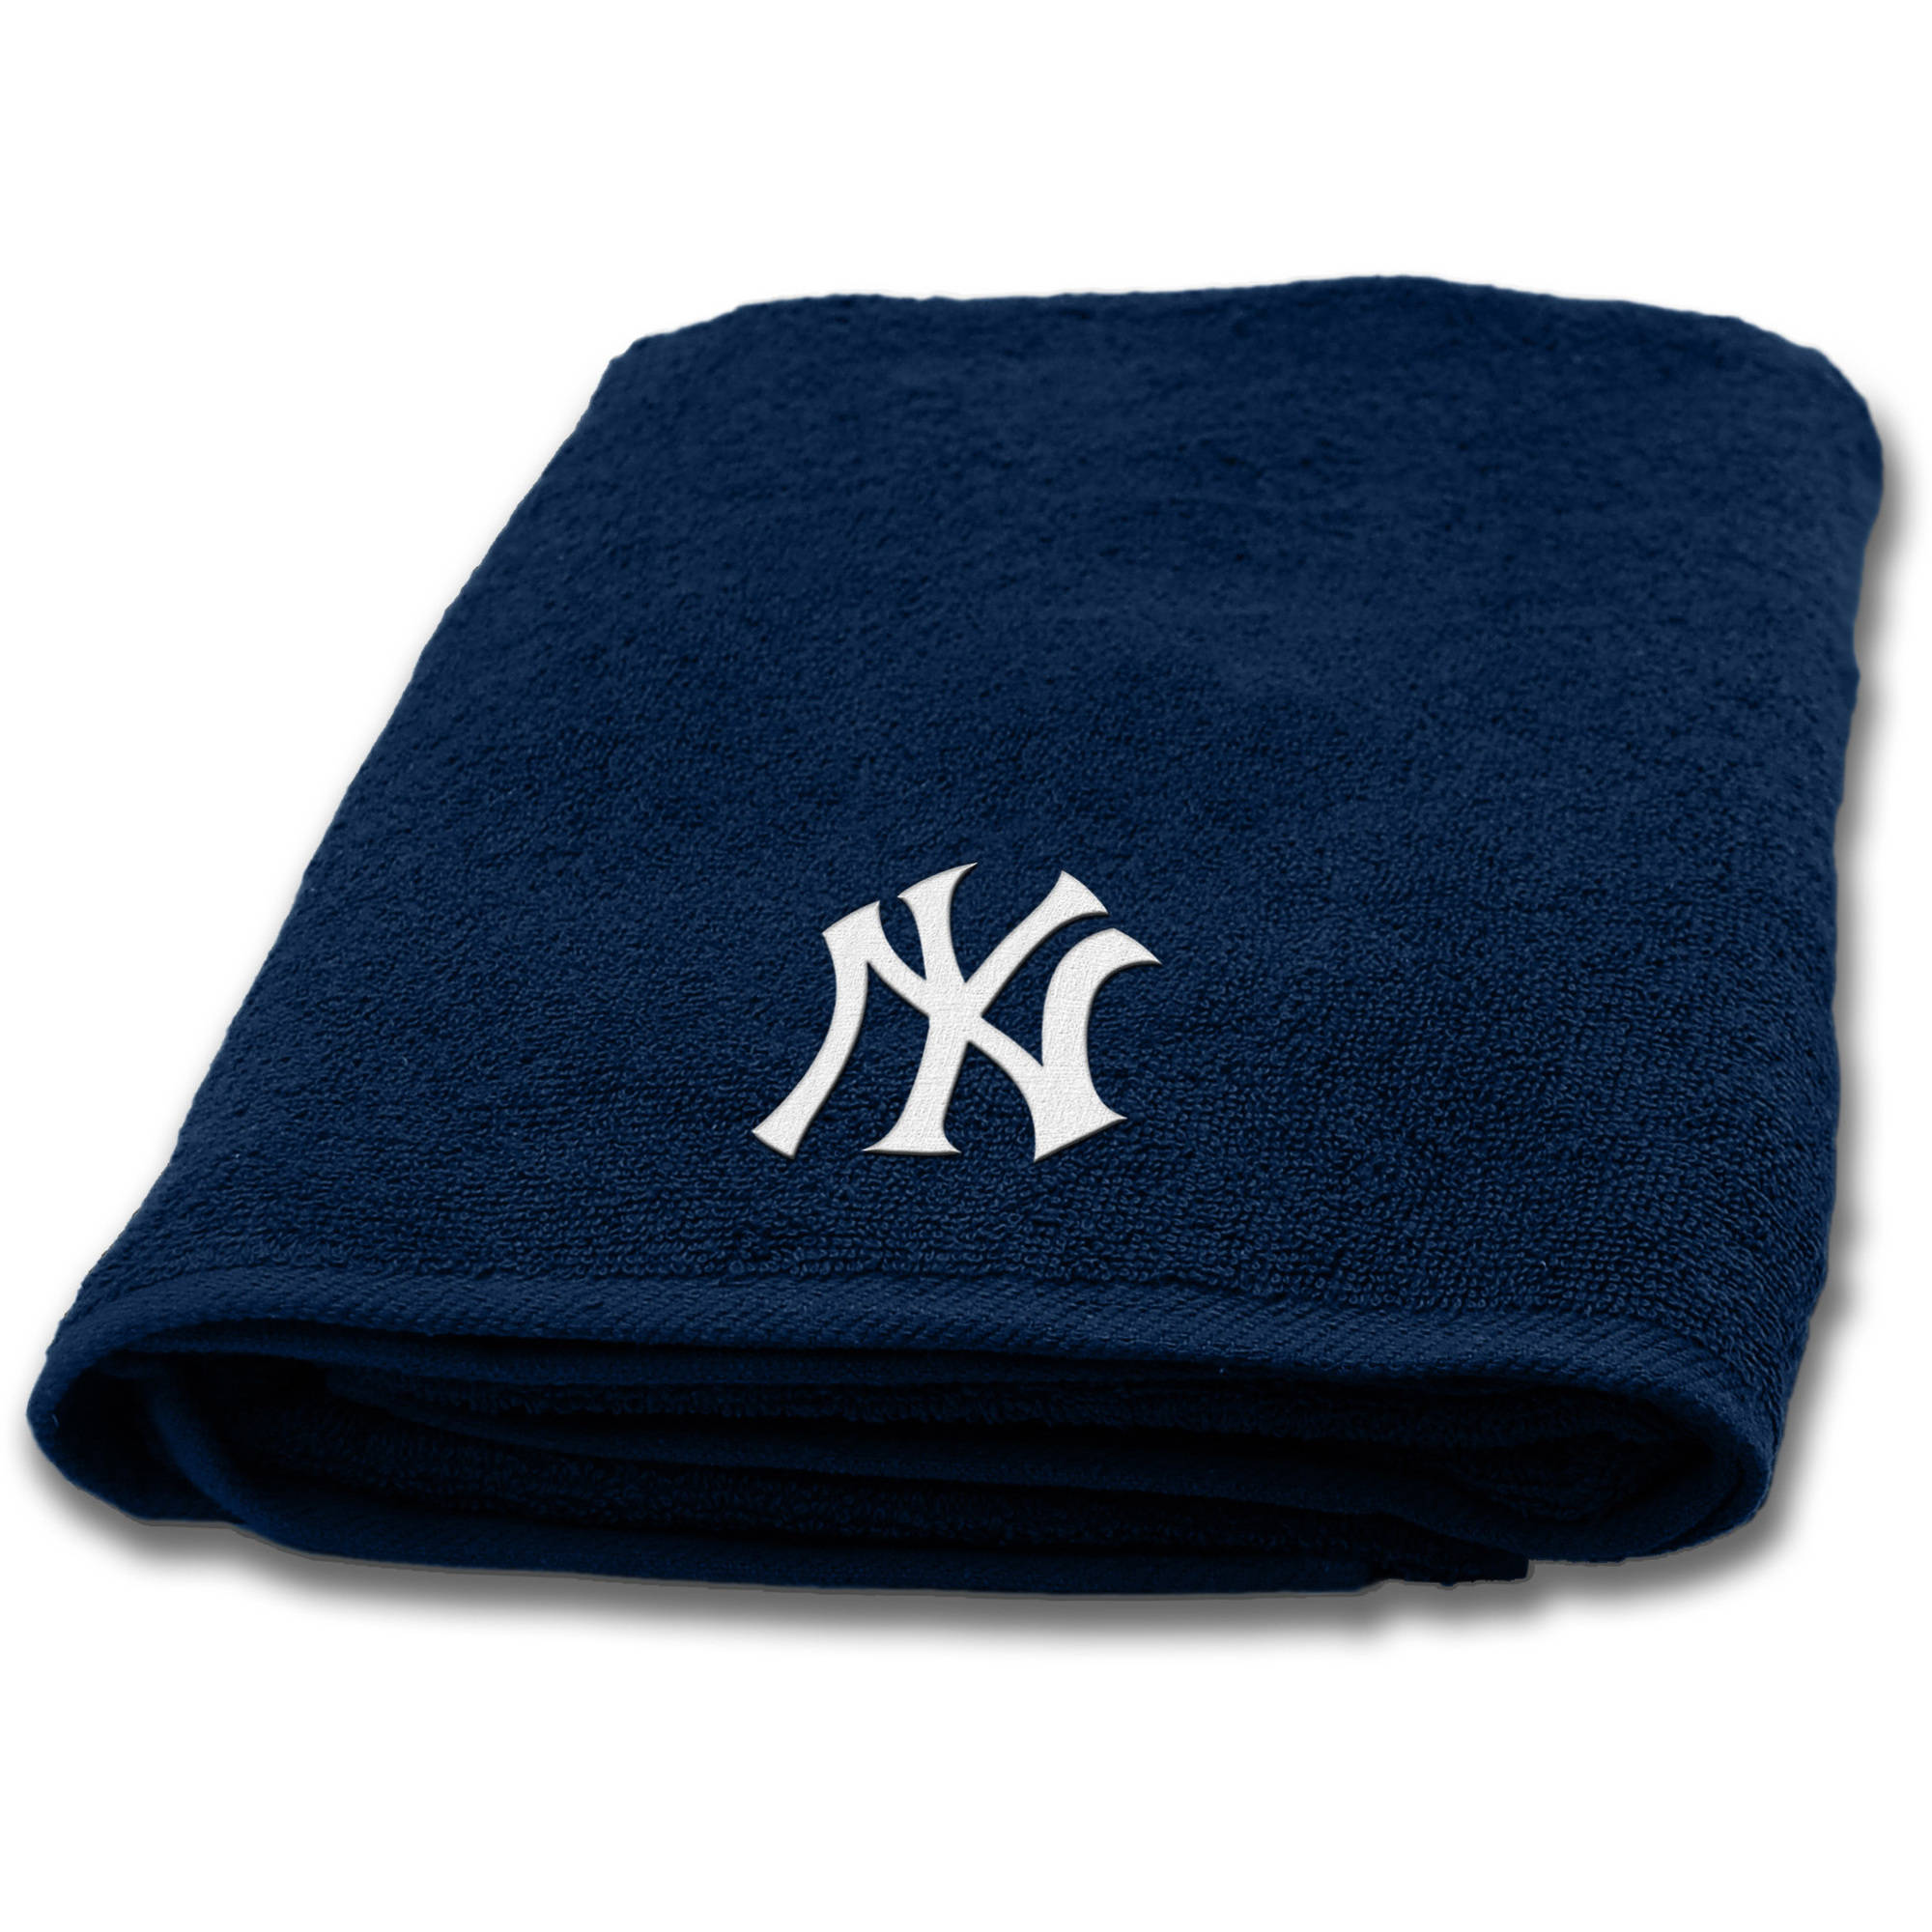 "MLB New York Yankees 25""x50"" Applique Bath Towel"